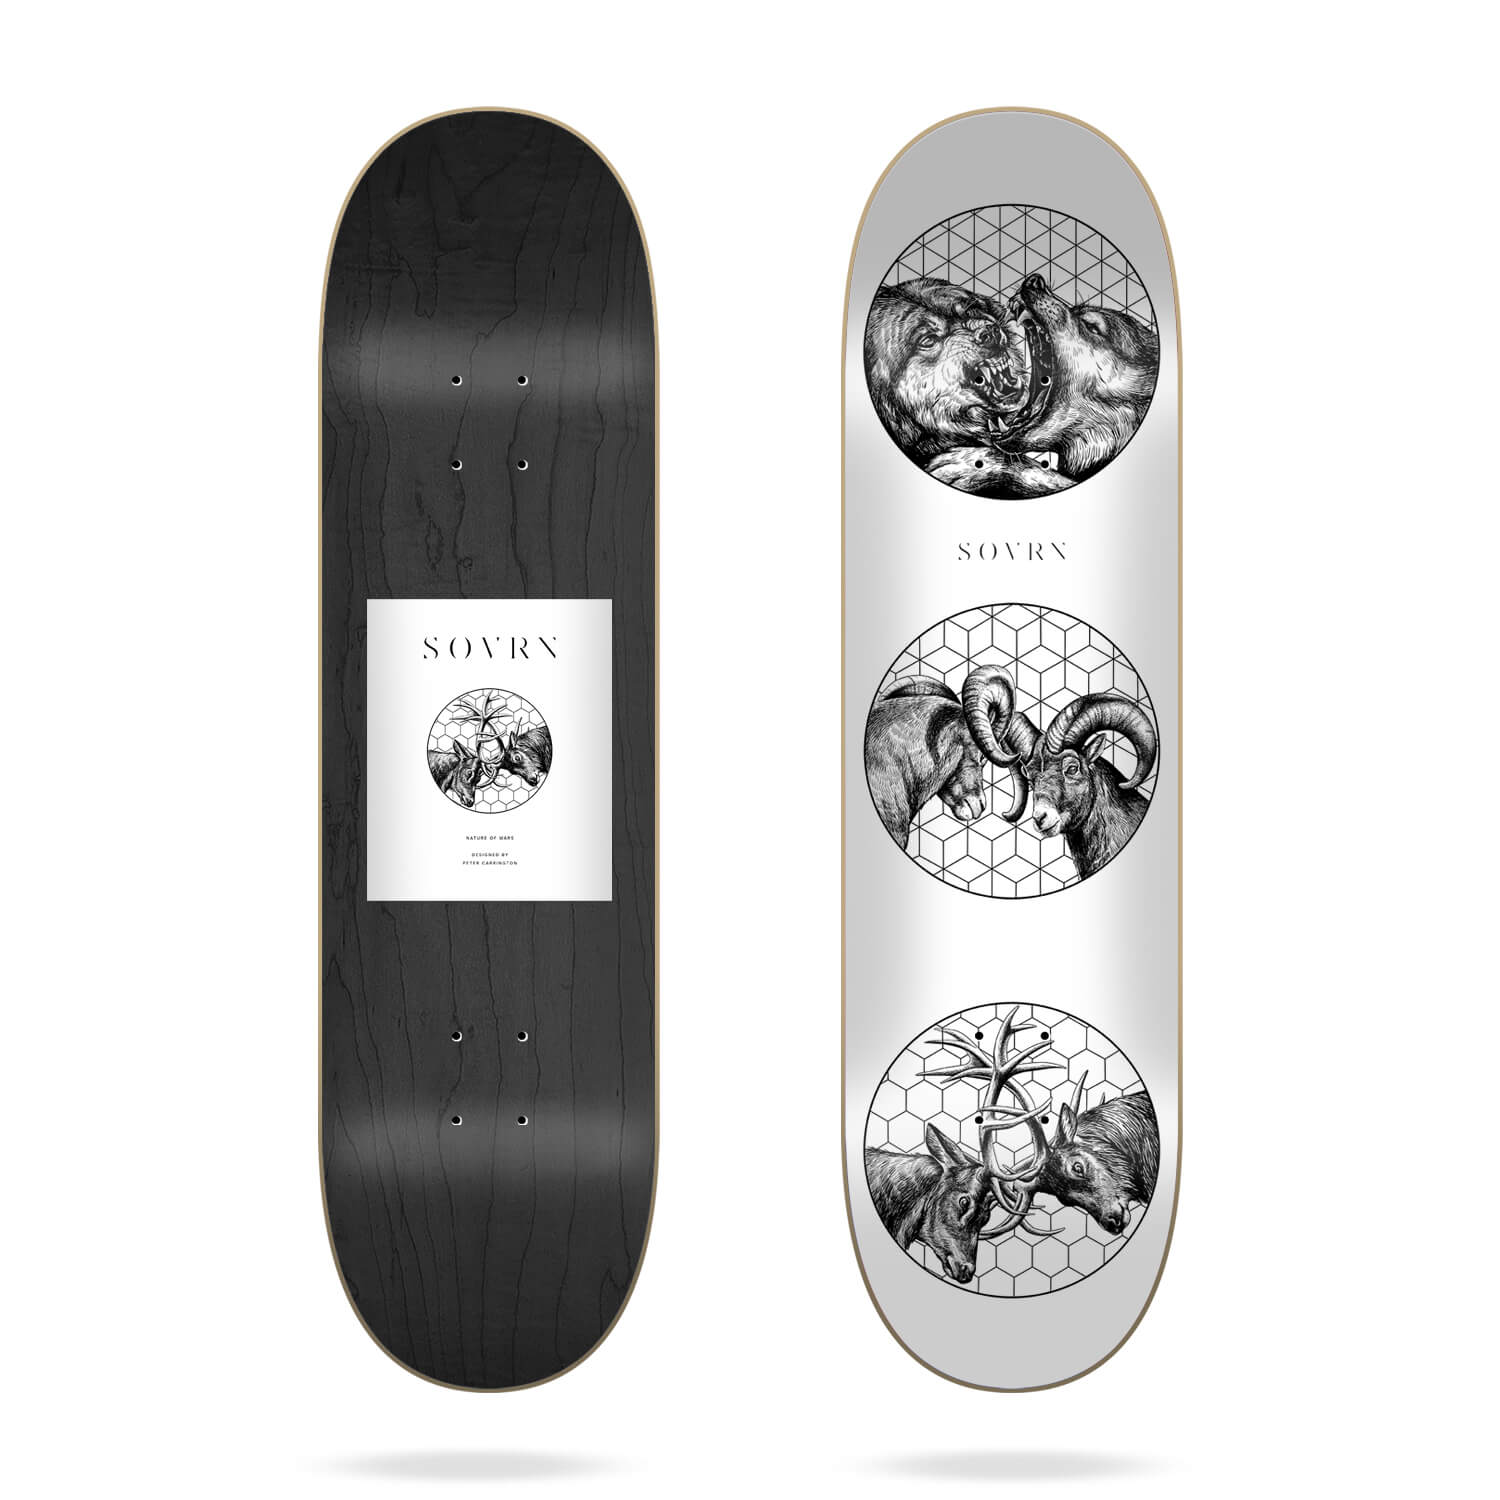 "Sovrn Nature Of Wars 8.38"" Deck"